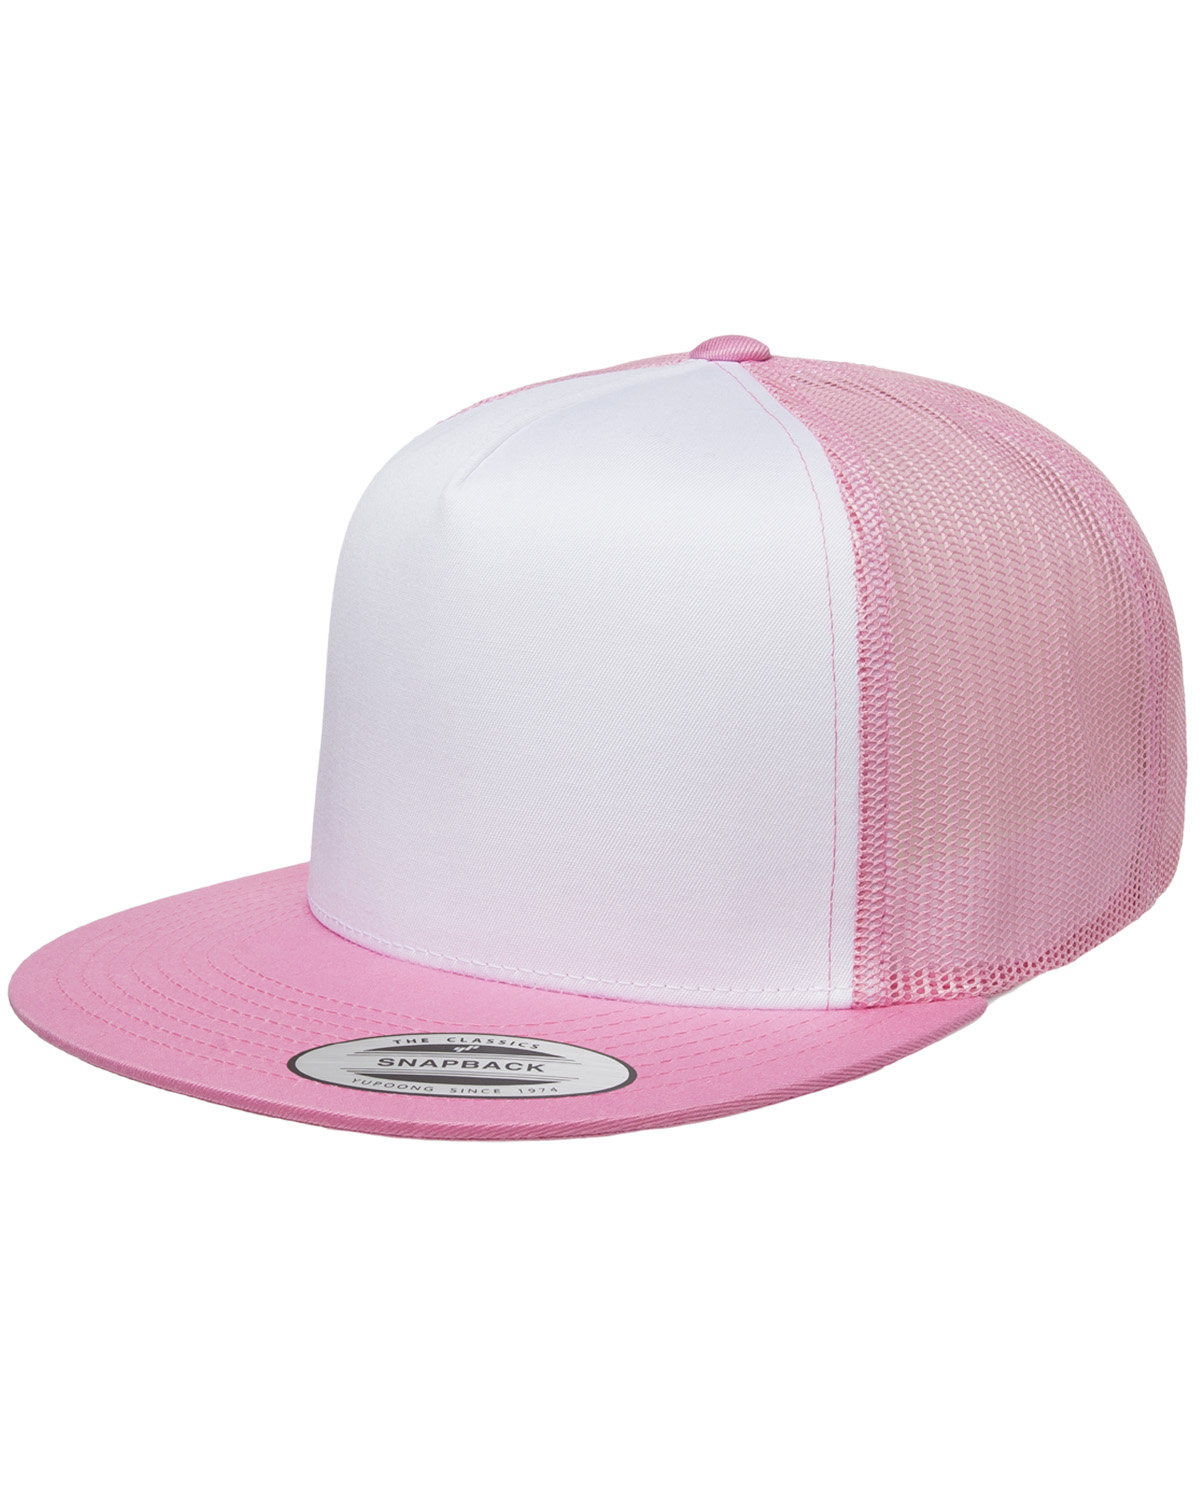 Yupoong Adult Classic Trucker with White Front Panel Cap PINK/ WHT/ PINK